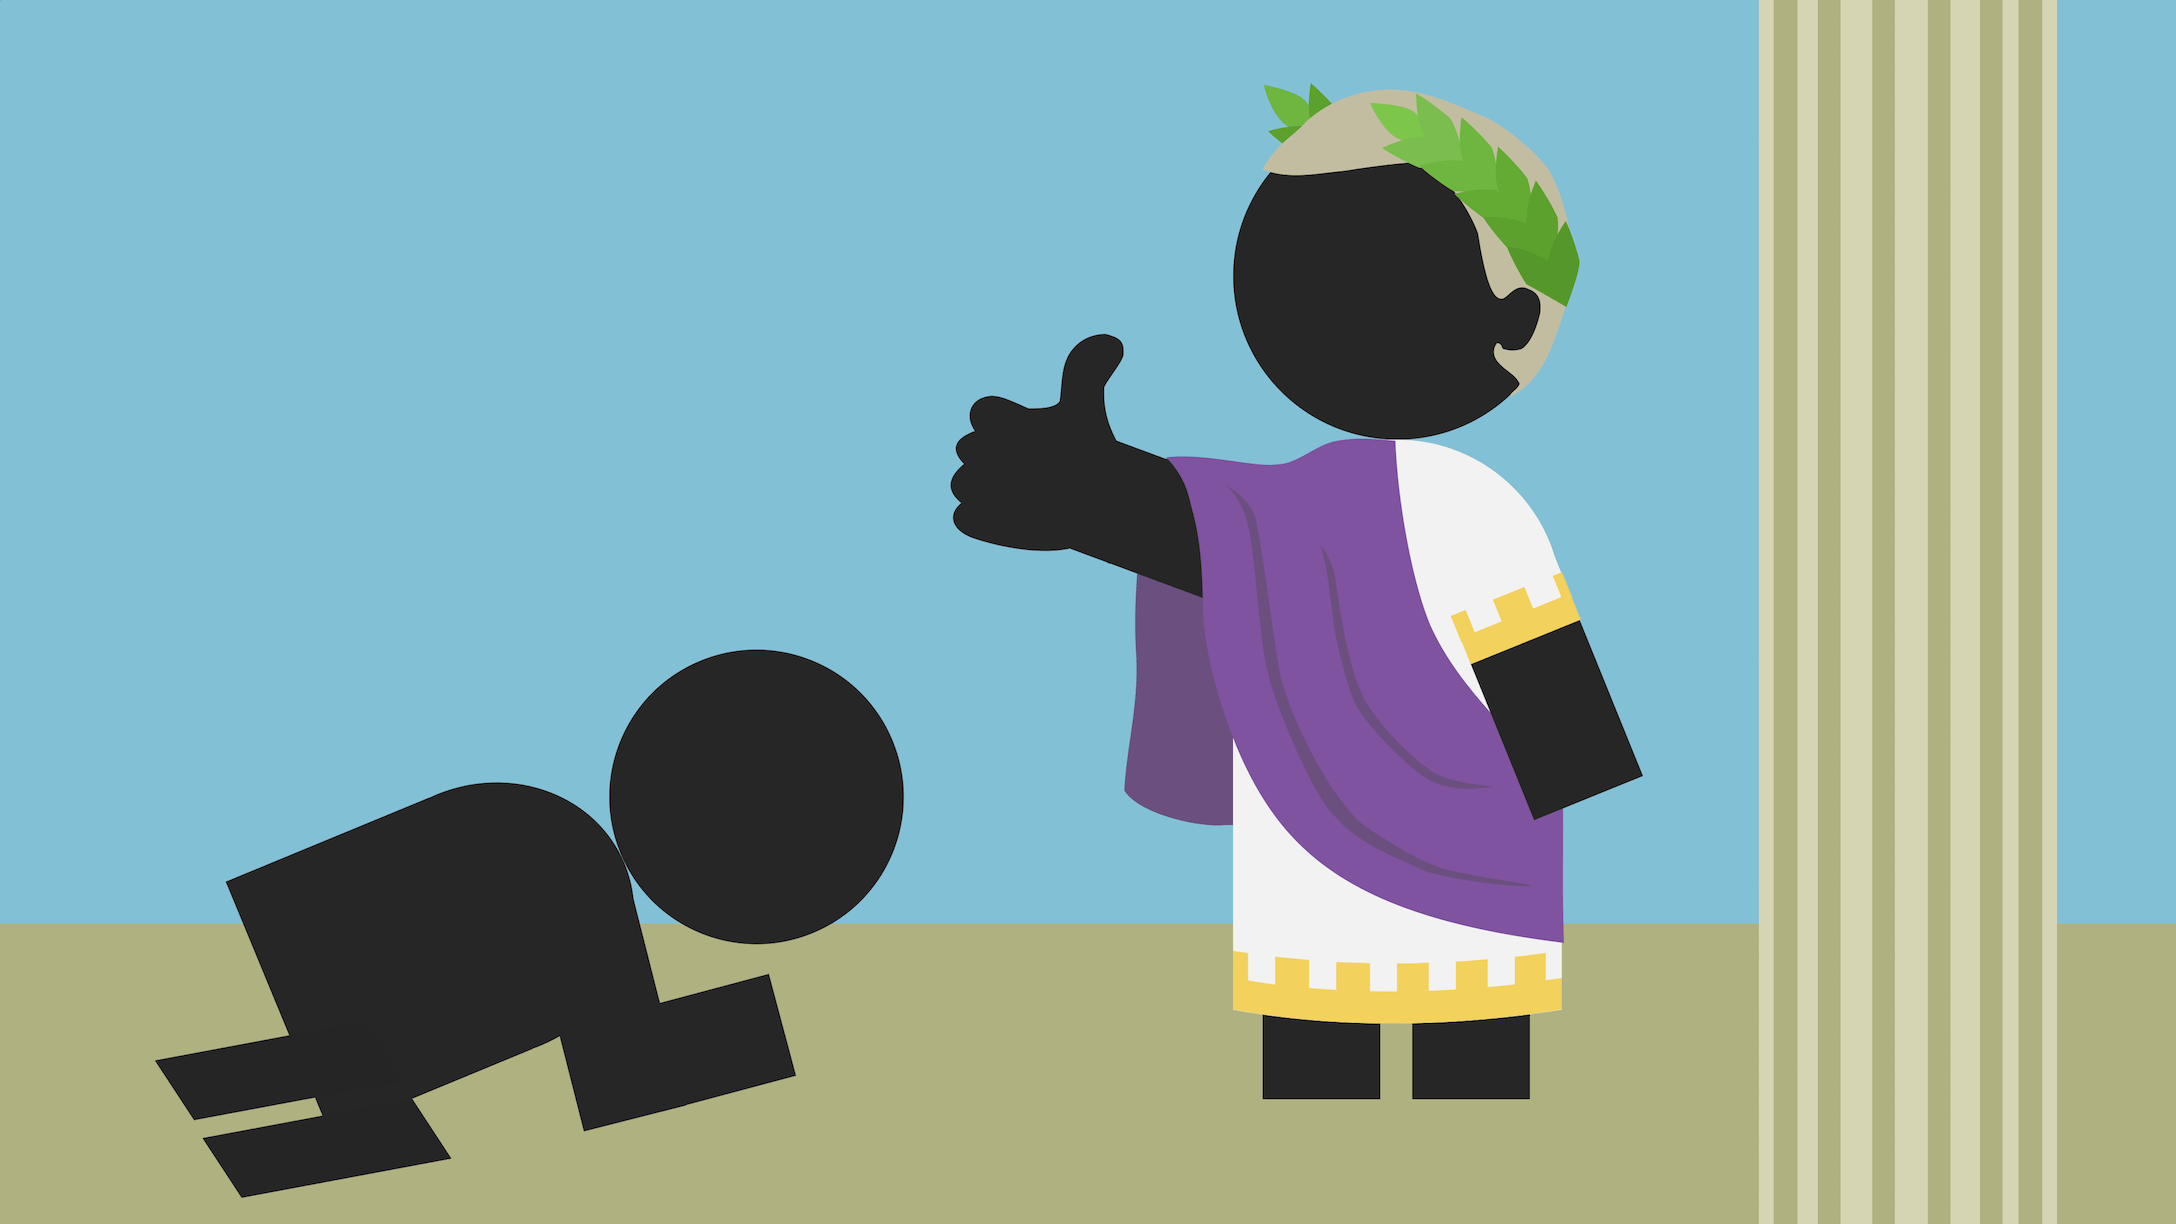 Roman emperor gives a thumbs up to a subject from the lower classes